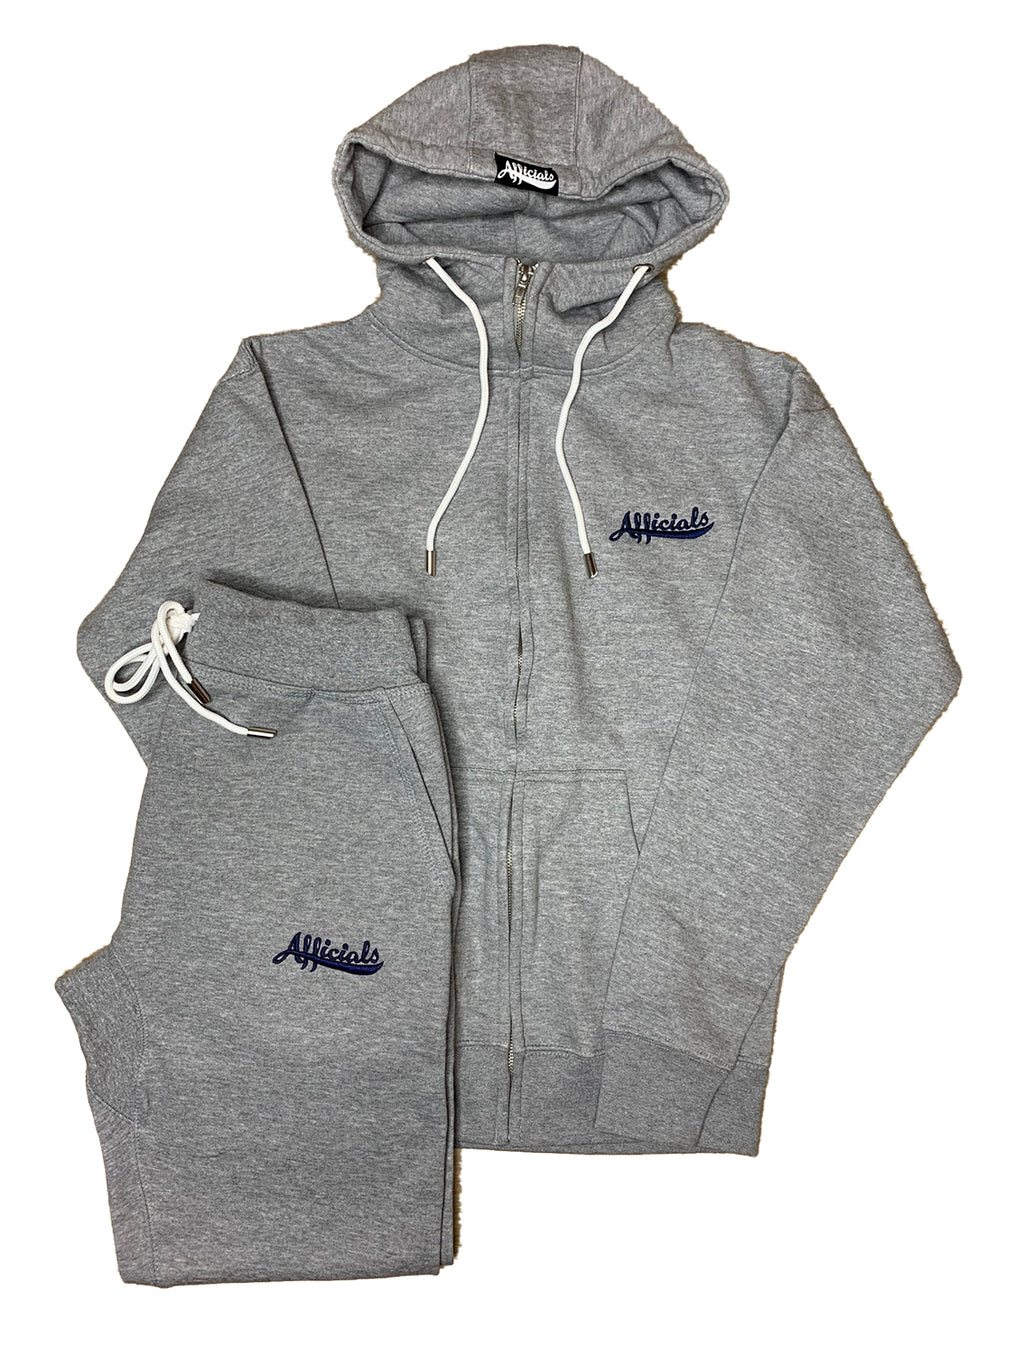 Afficials Sweatsuit Set GRAY/NAVY [Embroidered]